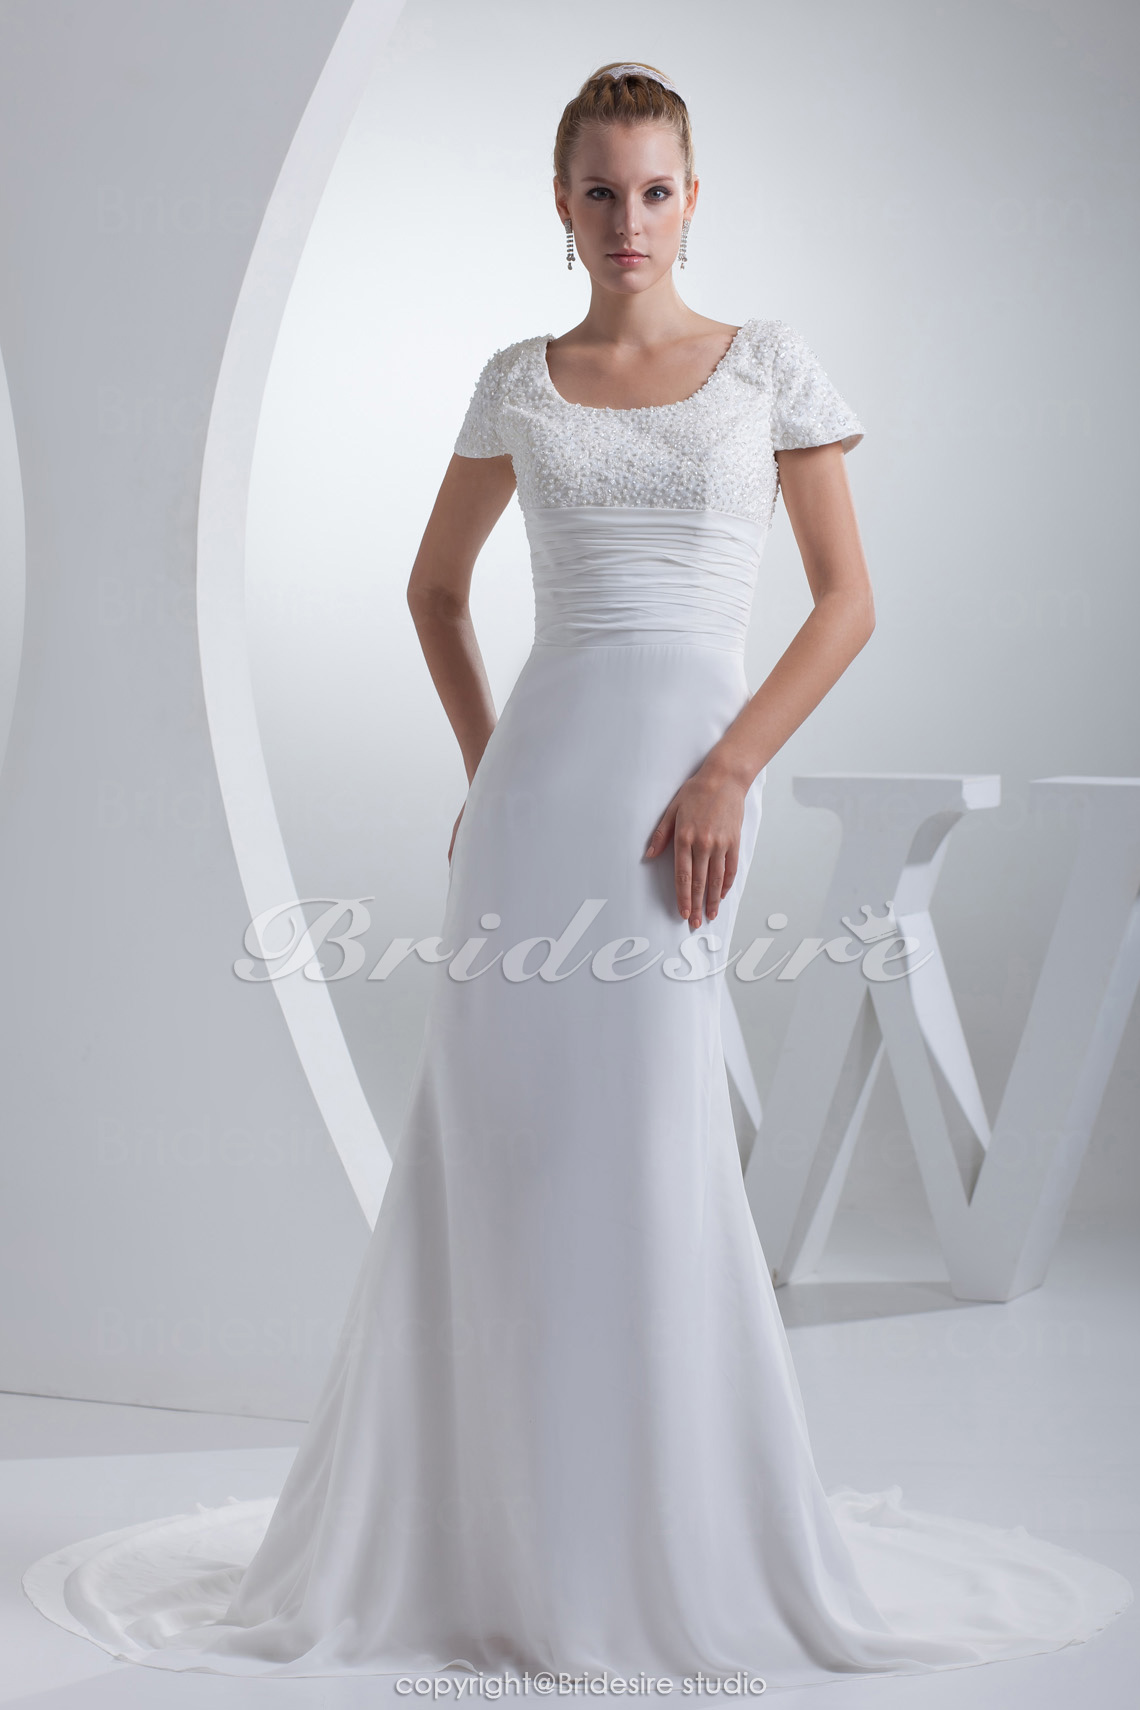 Sheath/Column Scoop Court Train Short Sleeve Chiffon Wedding Dress